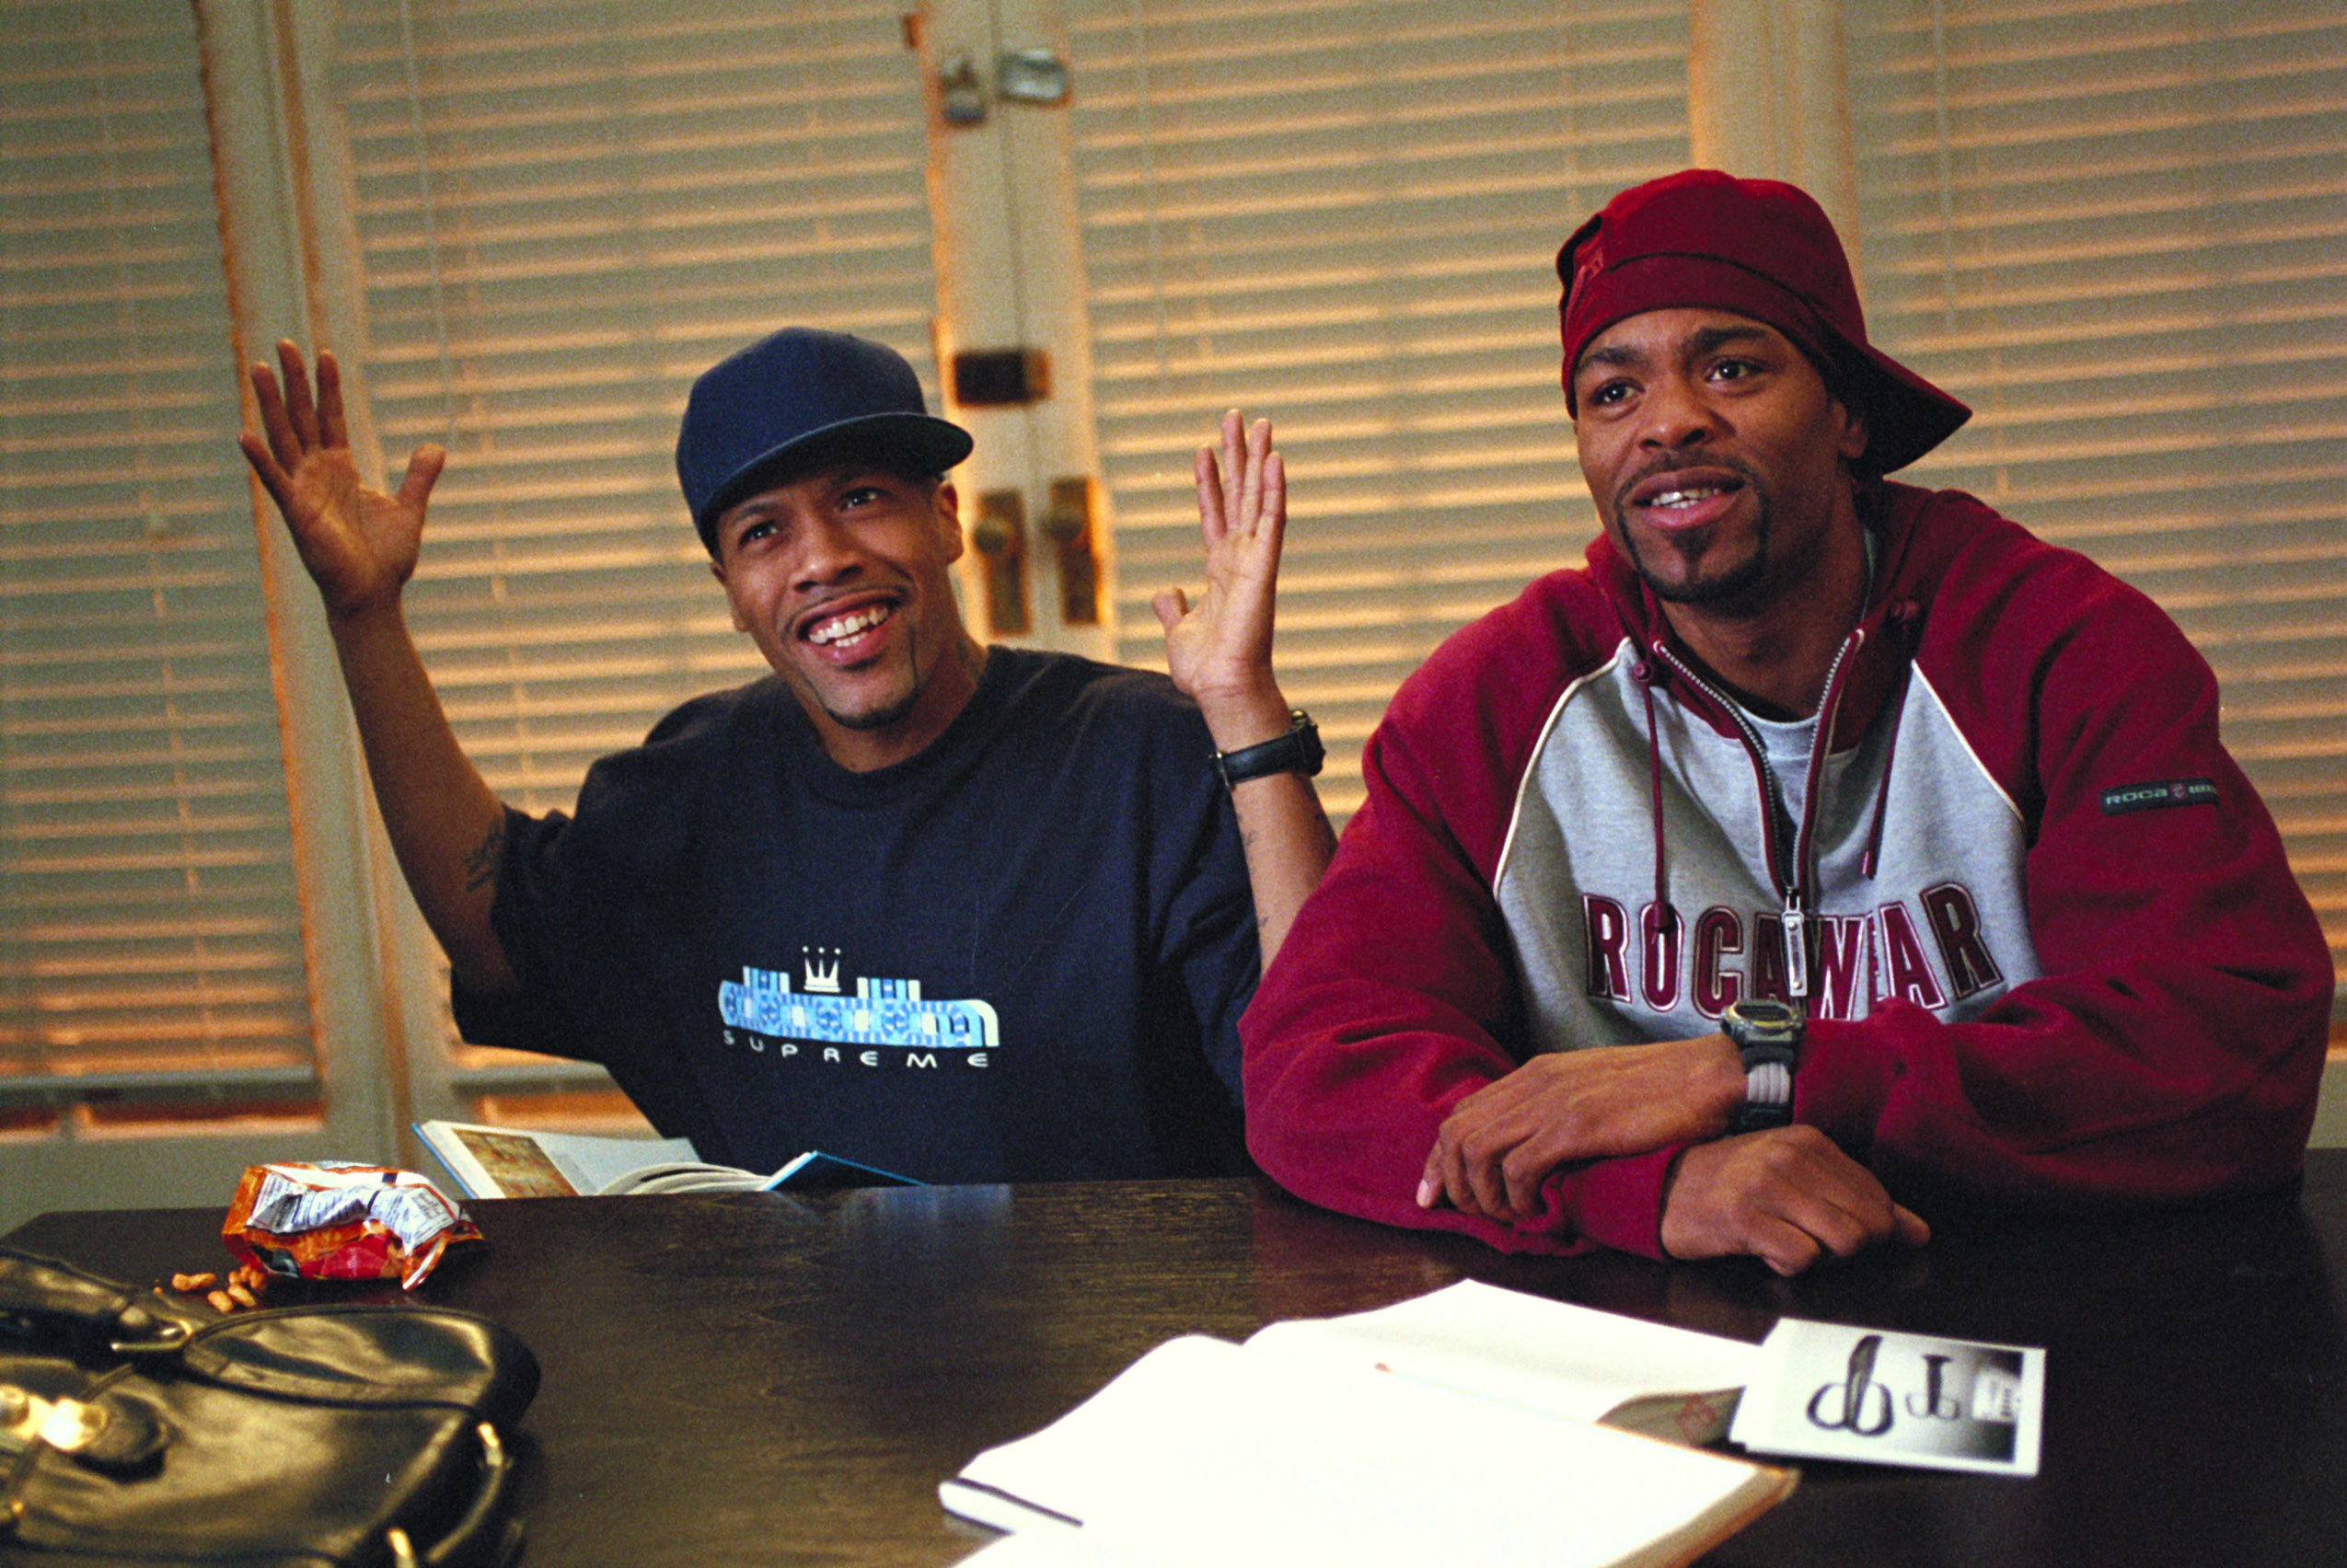 Redman and Method Man studying as Jamal and Silas in How High